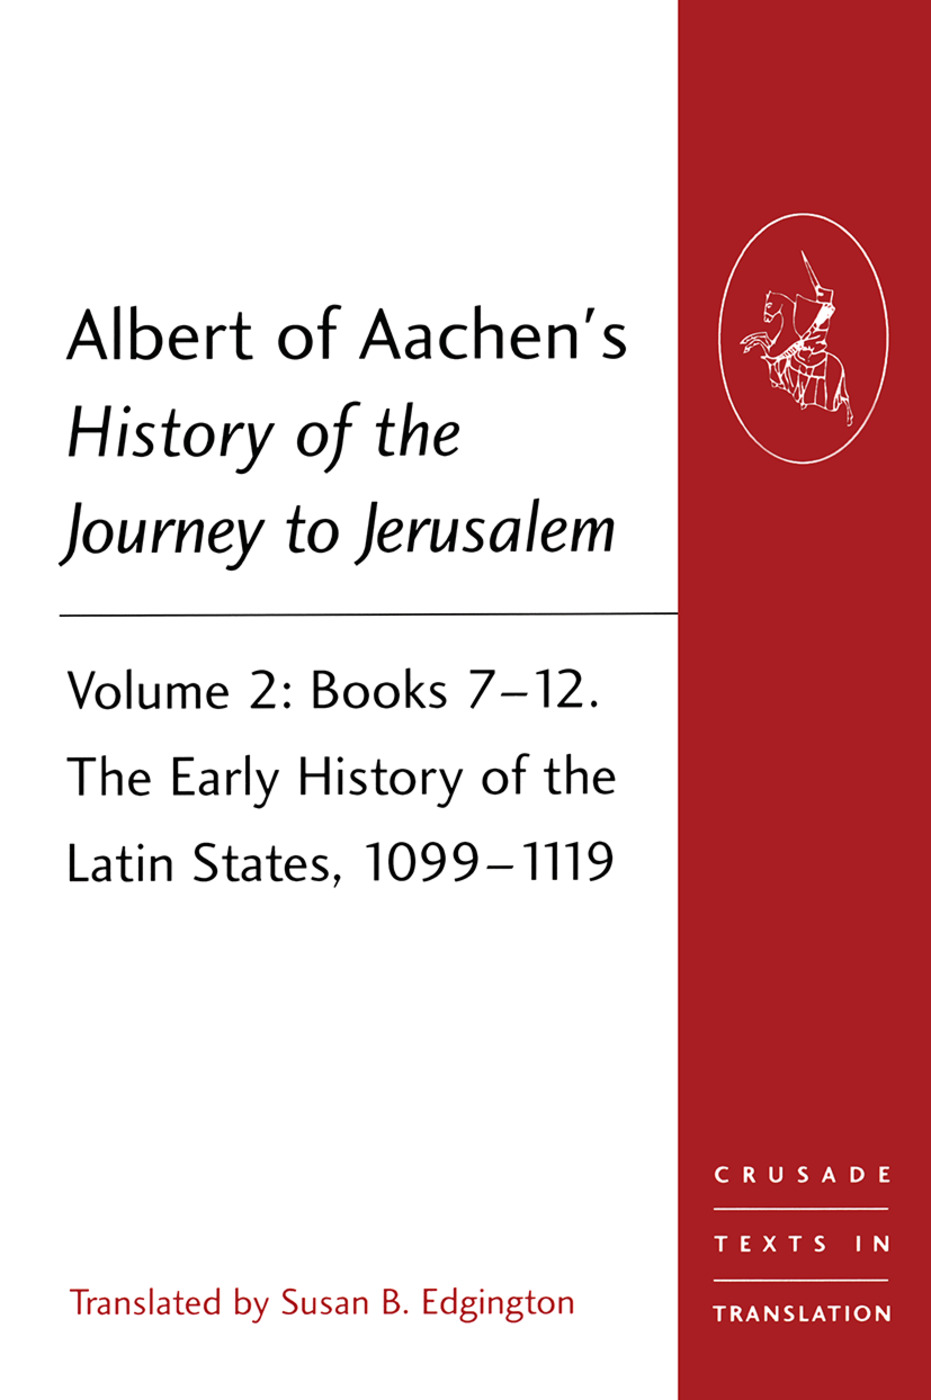 Albert of Aachen's History of the Journey to Jerusalem: Volume 2: Books 7-12. The Early History of the Latin States, 1099-1119, 1st Edition (Paperback) book cover